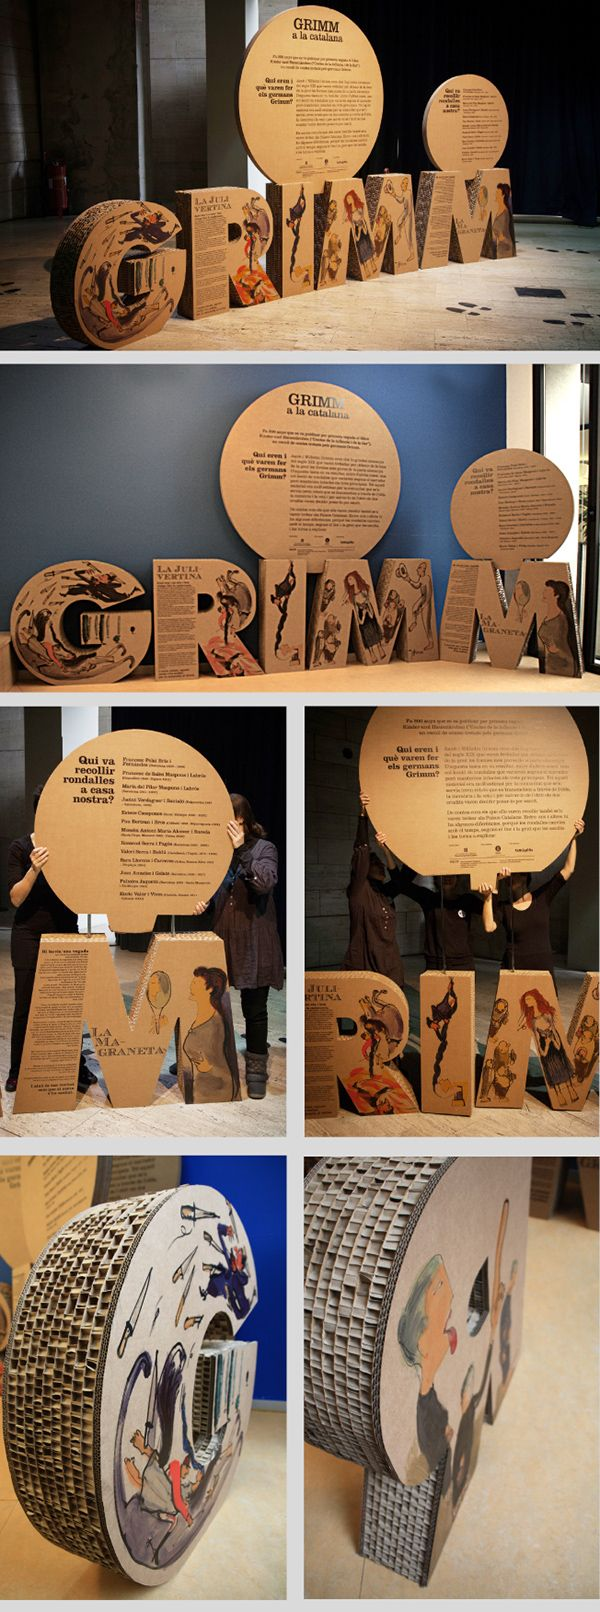 GRIMM a la Catalana: Projecte expositiu itinerantTravelling exhibition that shows the differences in the original stories comparing them GRIMM Catalan versions. Presentation made with cardboard to facilitate weight during transport, as it is an exhibitio…